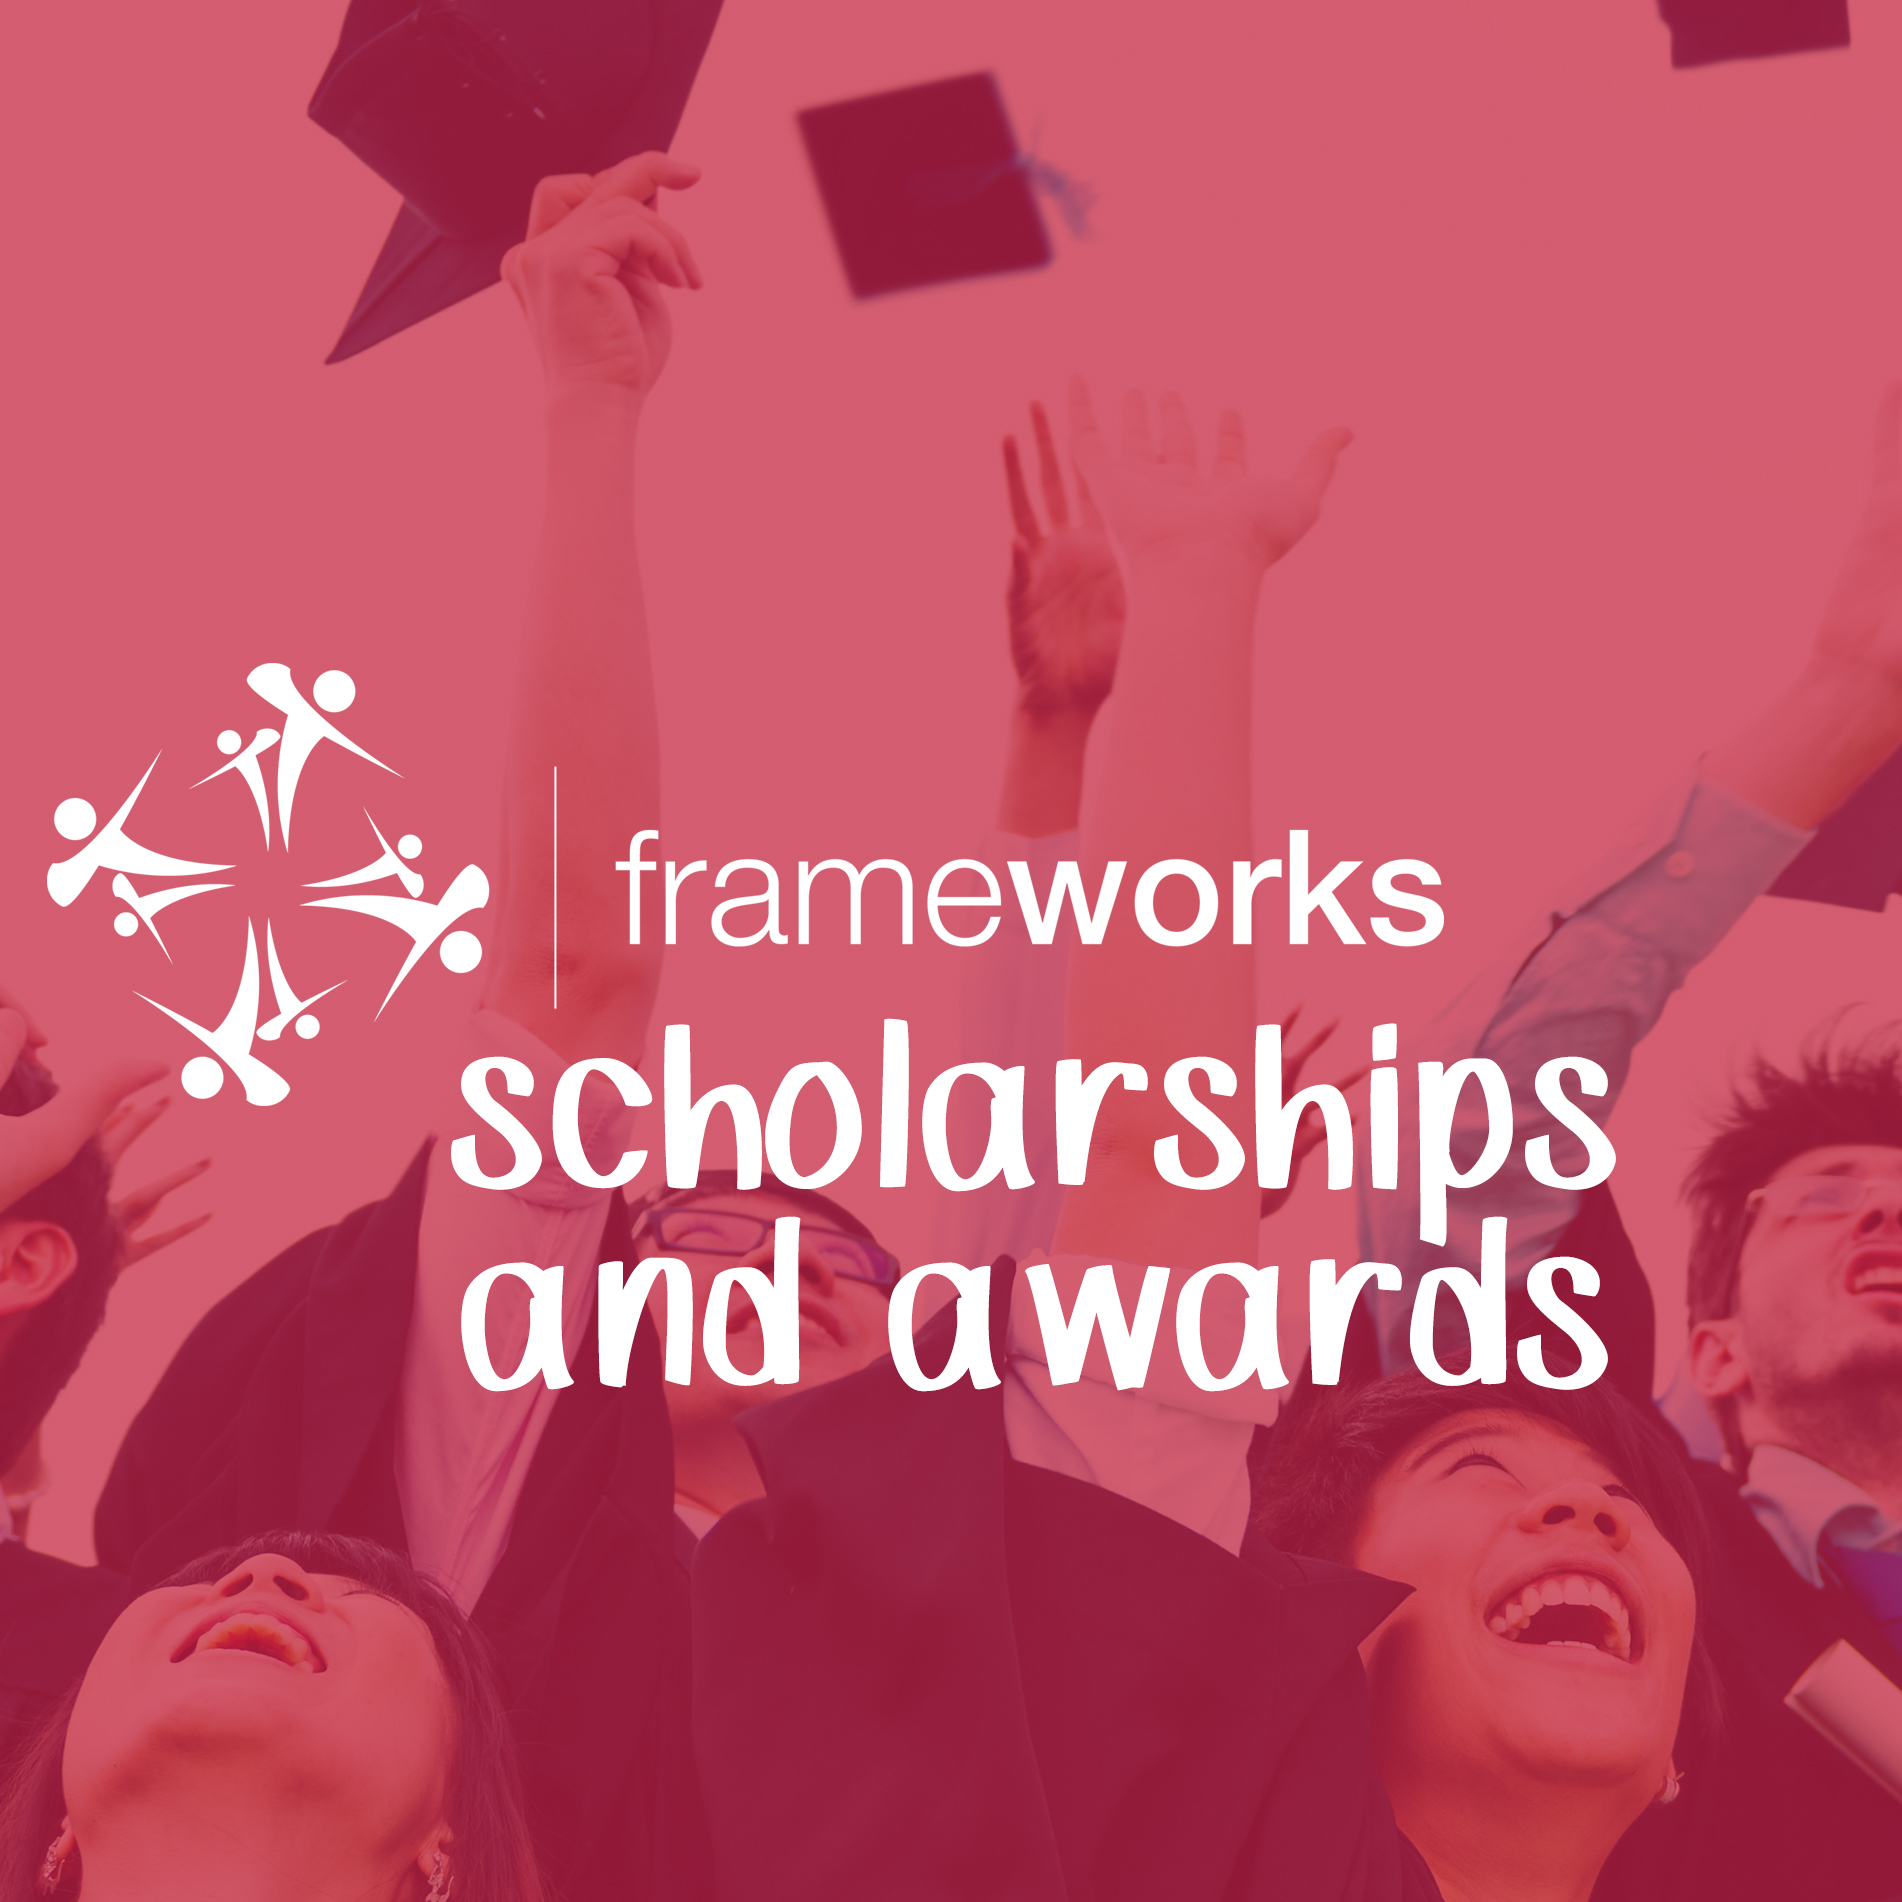 frameworks scholarships and awards thumbnail.jpg